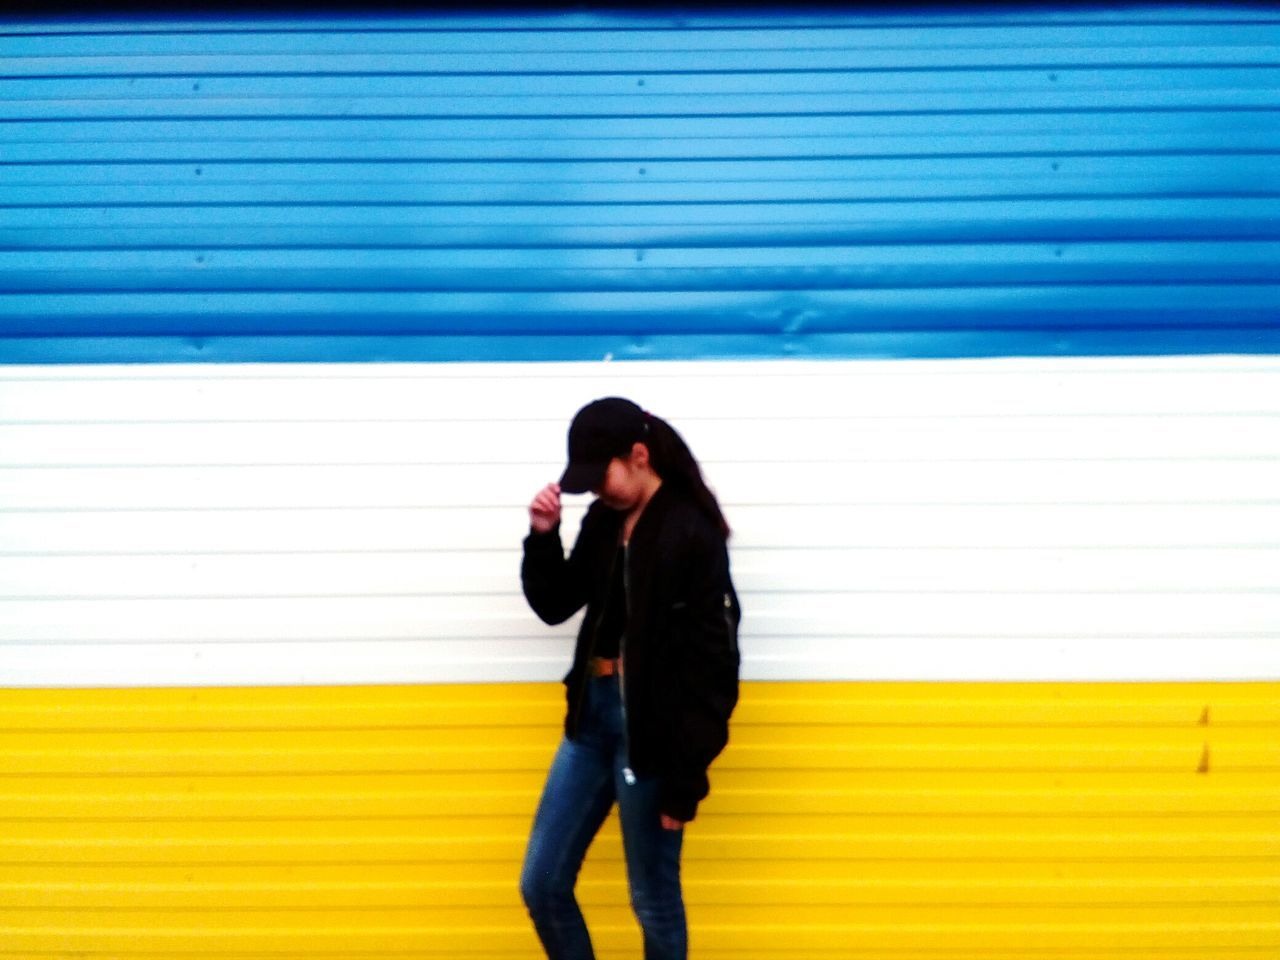 one person, young adult, real people, standing, young women, lifestyles, striped, leisure activity, yellow, front view, casual clothing, day, outdoors, blue, corrugated iron, full length, architecture, adult, people